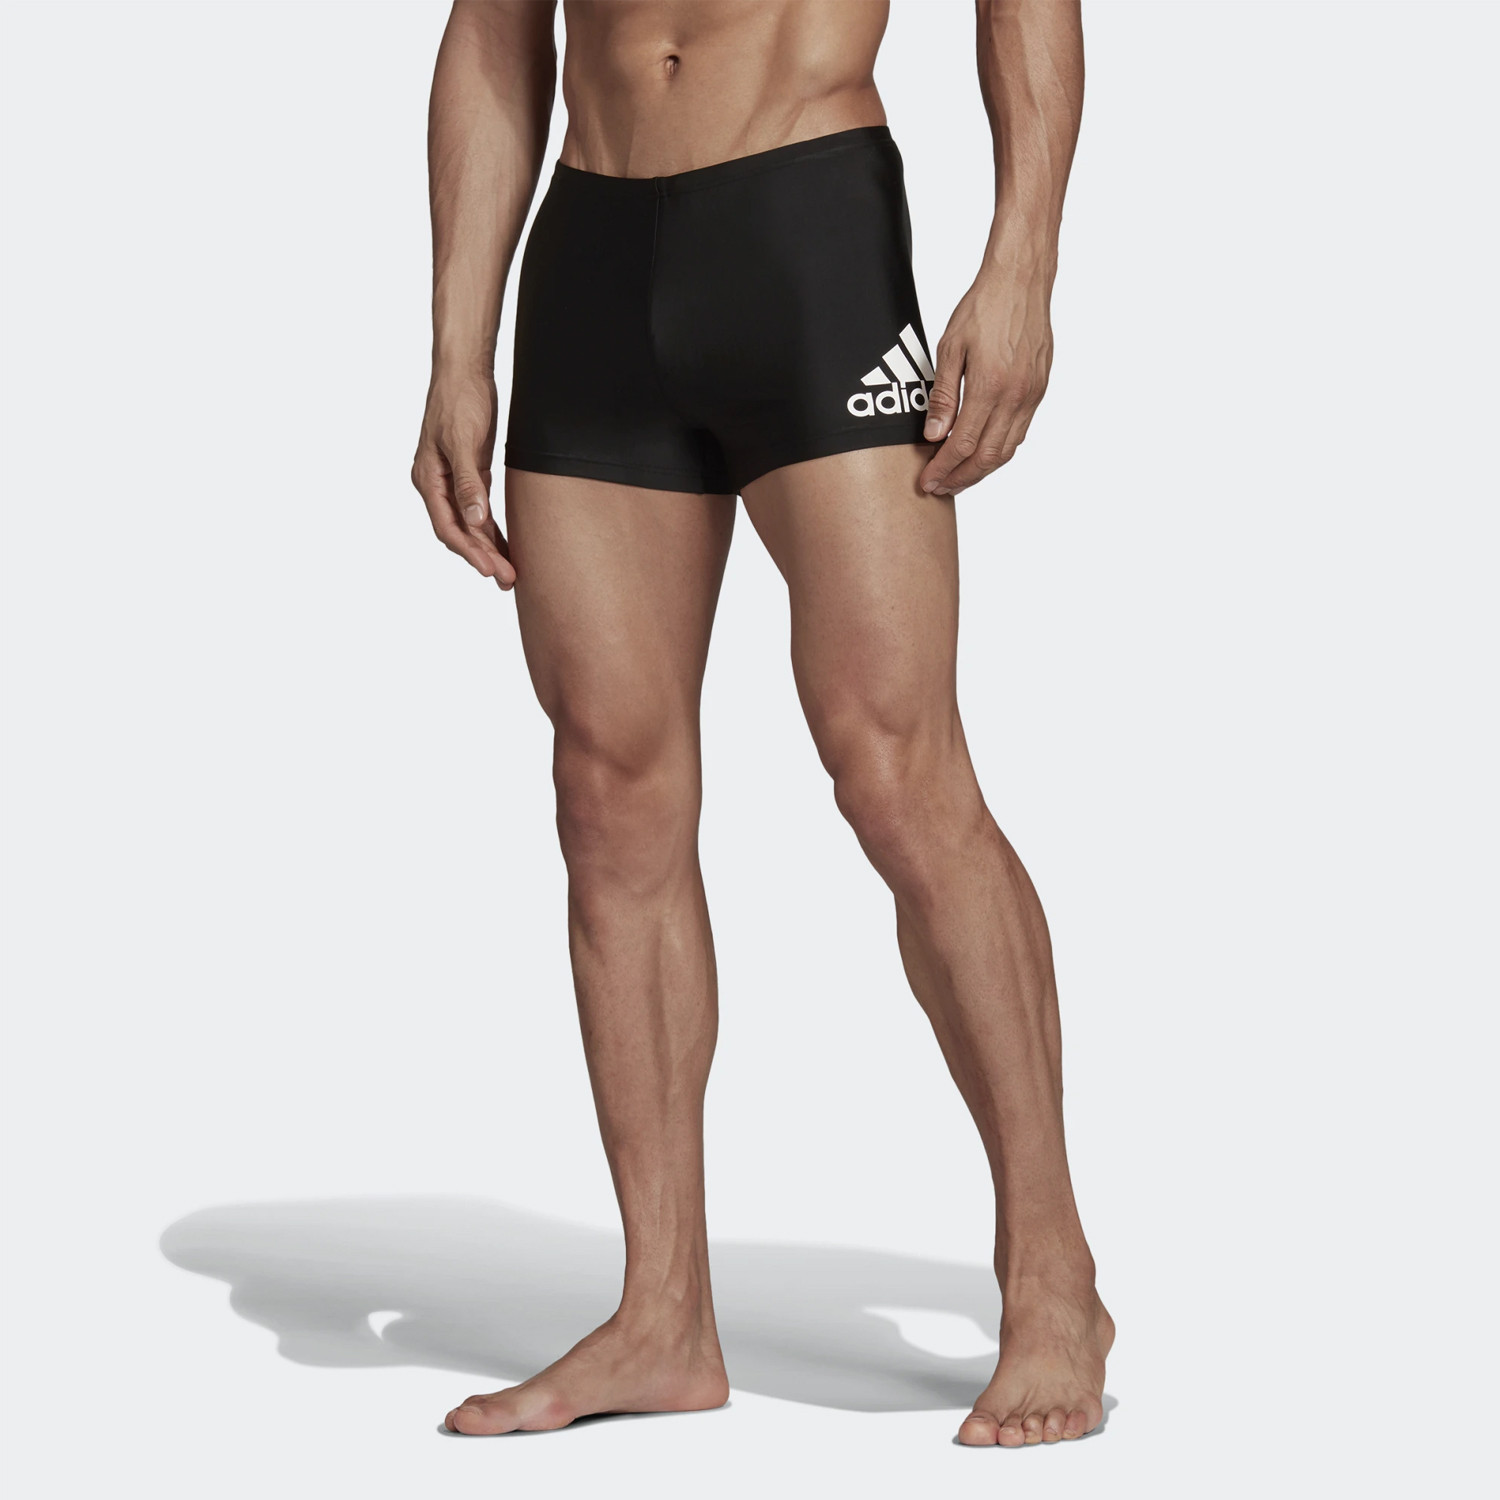 adidas Performance Badge Men's Swim Fitness Boxers (9000033593_1480)